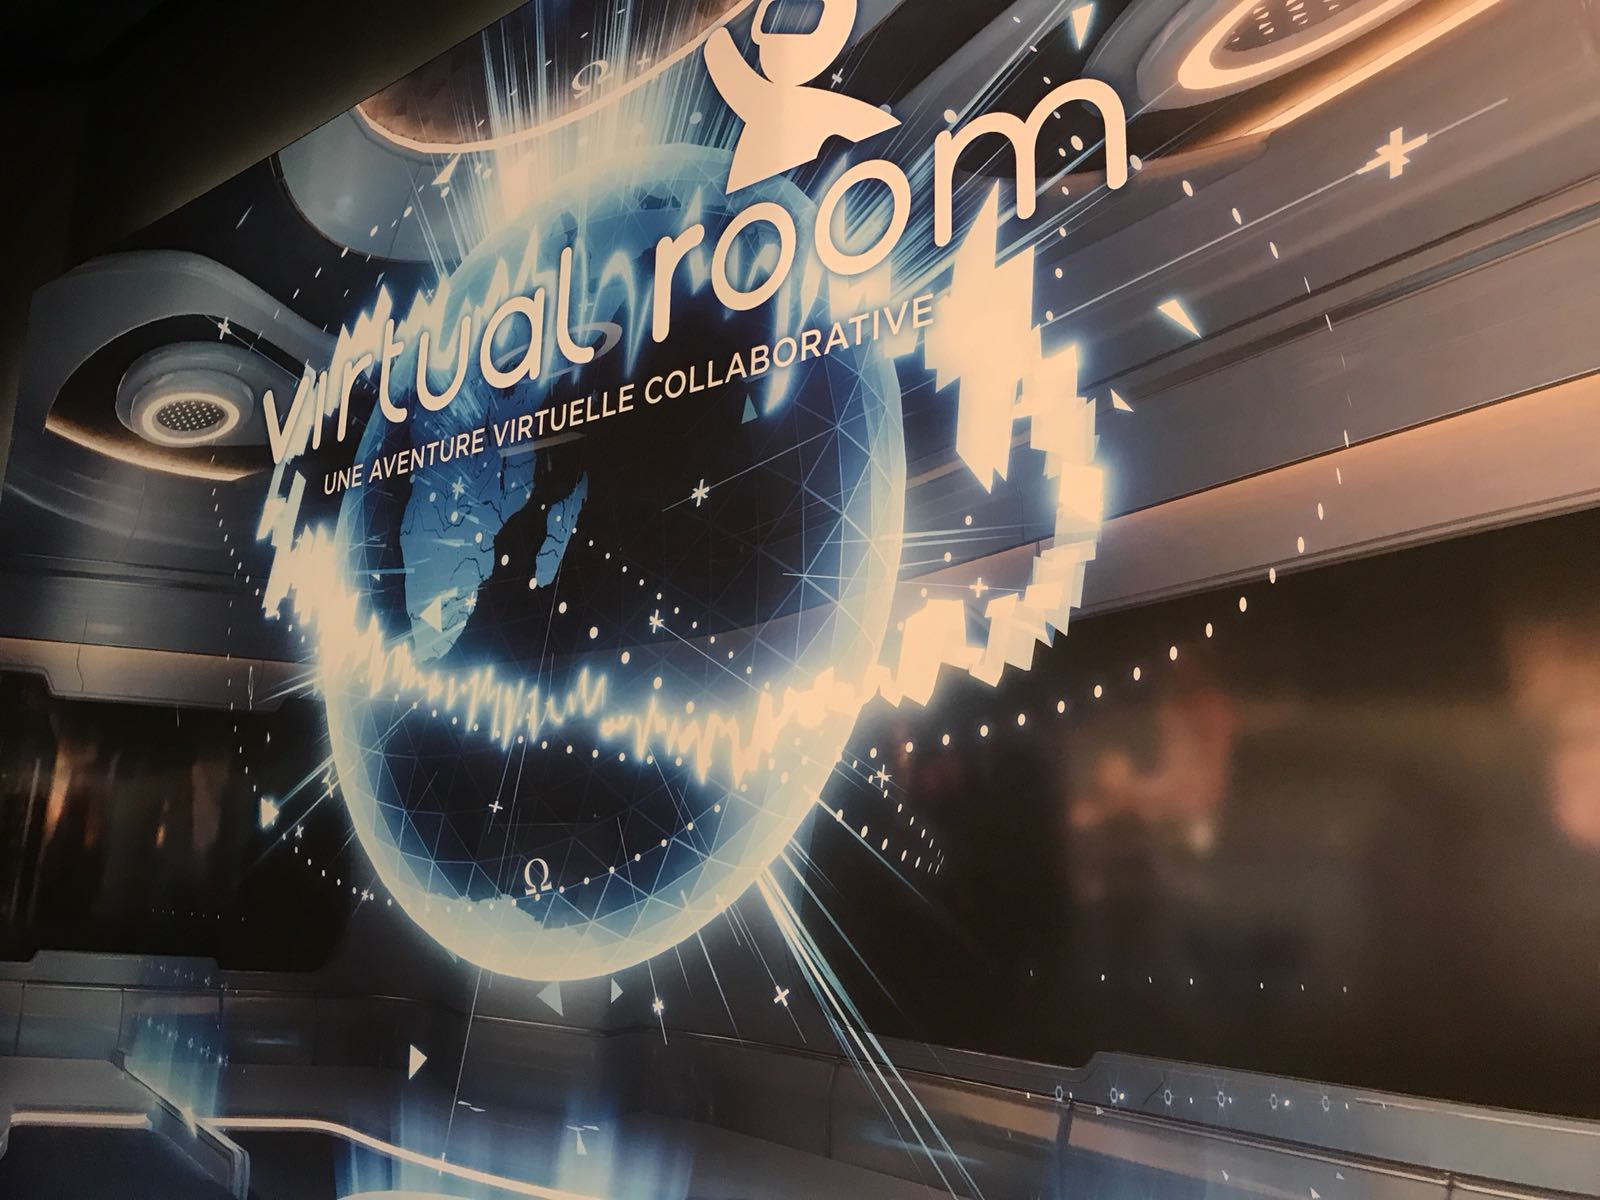 The Virtual Room logo on the wall